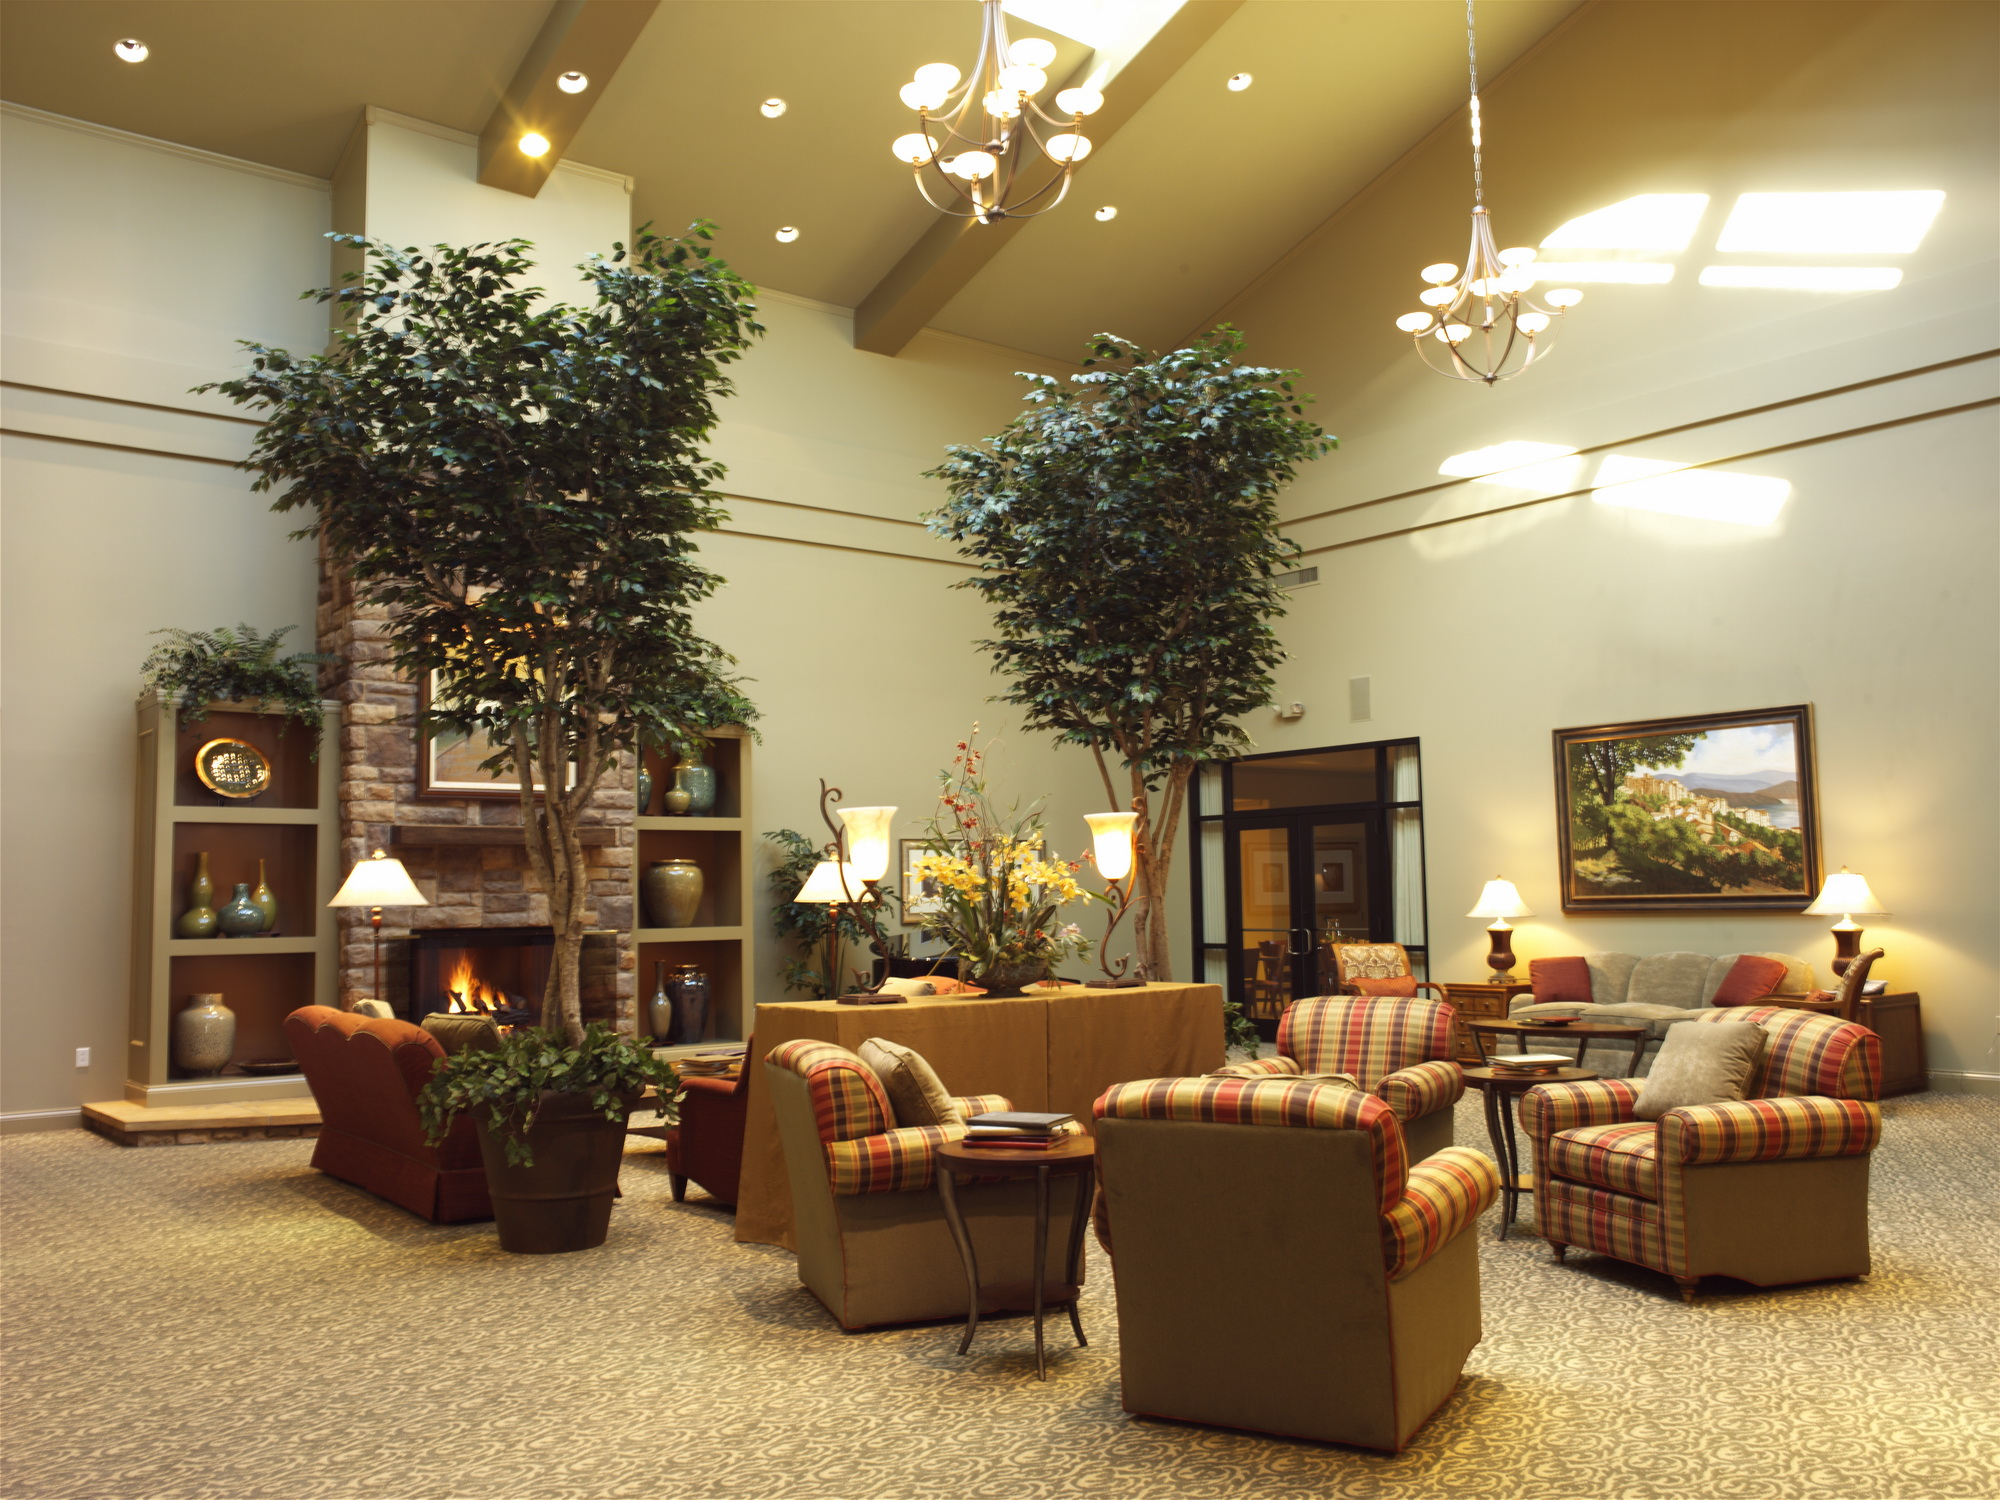 Geib funeral services jst architects - Funeral home interior design ...